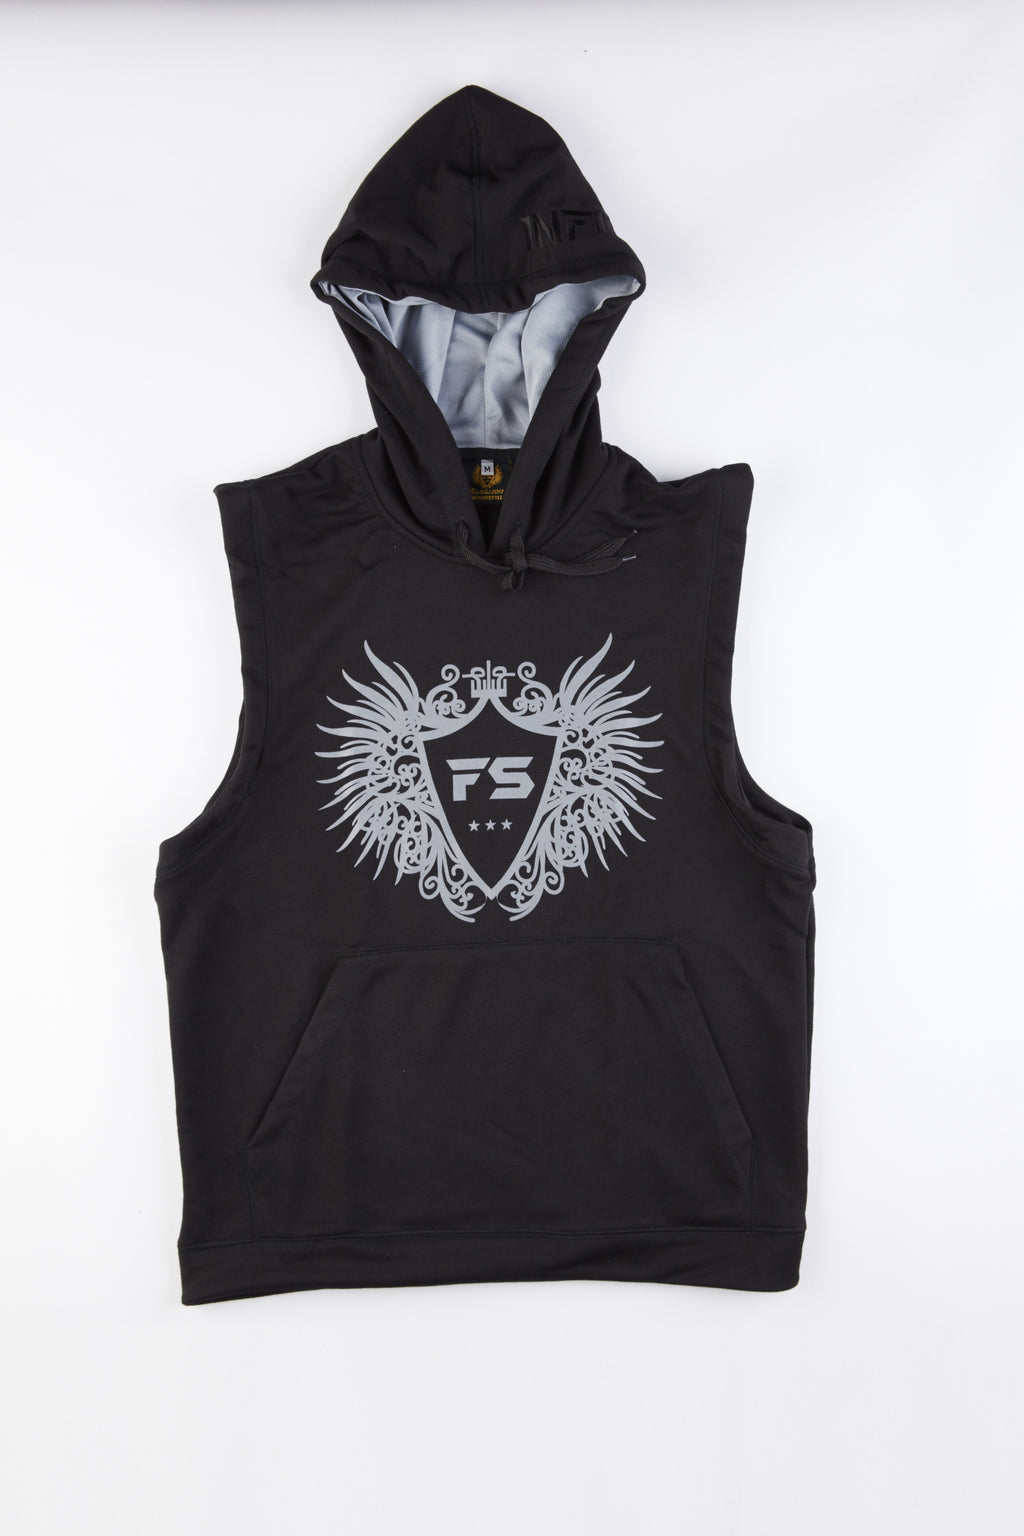 InFightStyle Sleeveless Hoodie - Black - InFightStyle Muay Thai Gear, Top